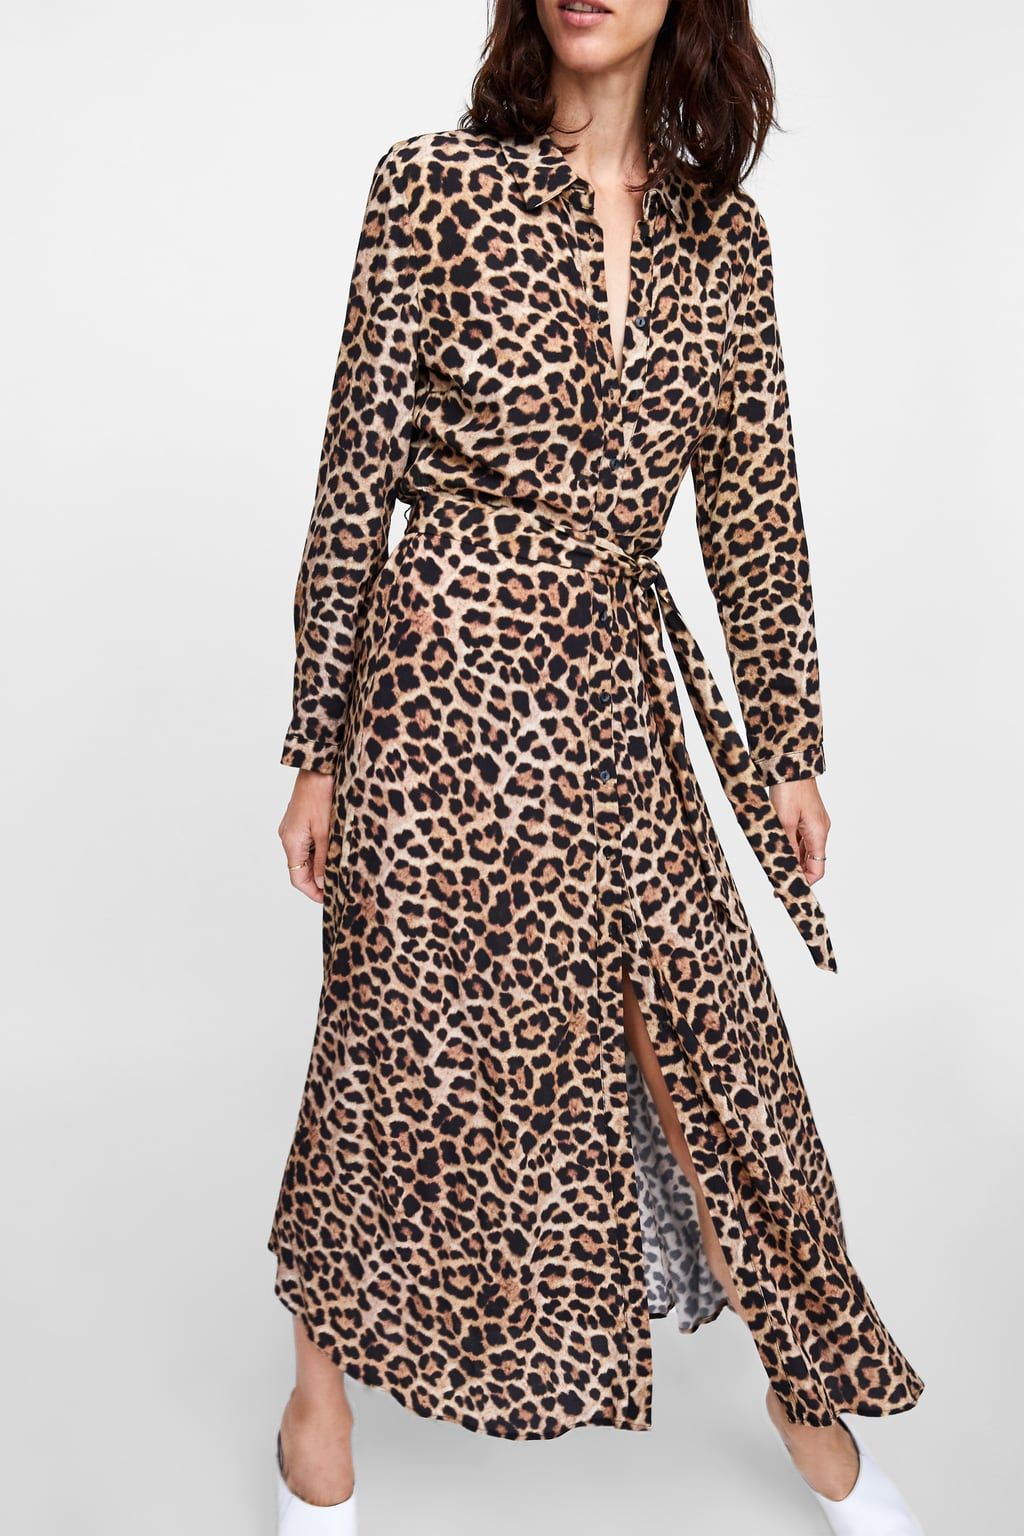 db1294907c Image 2 of LONG LEOPARD PRINT DRESS from Zara